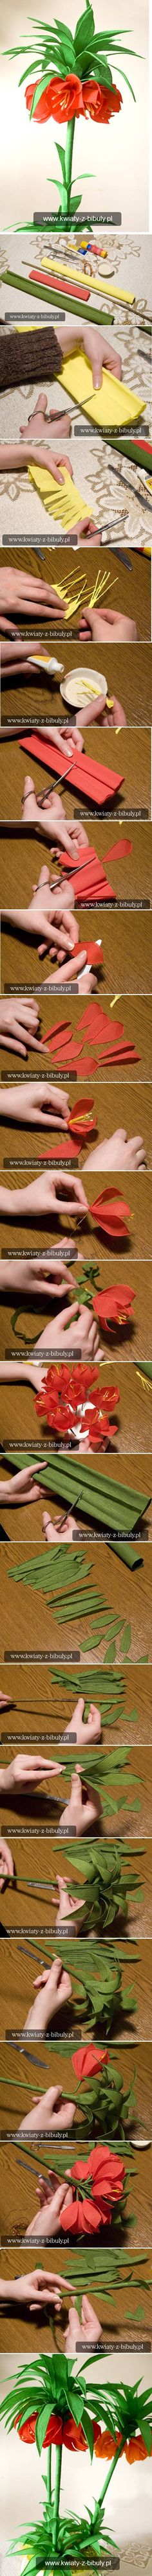 DIY Pretty Crepe Paper Flower